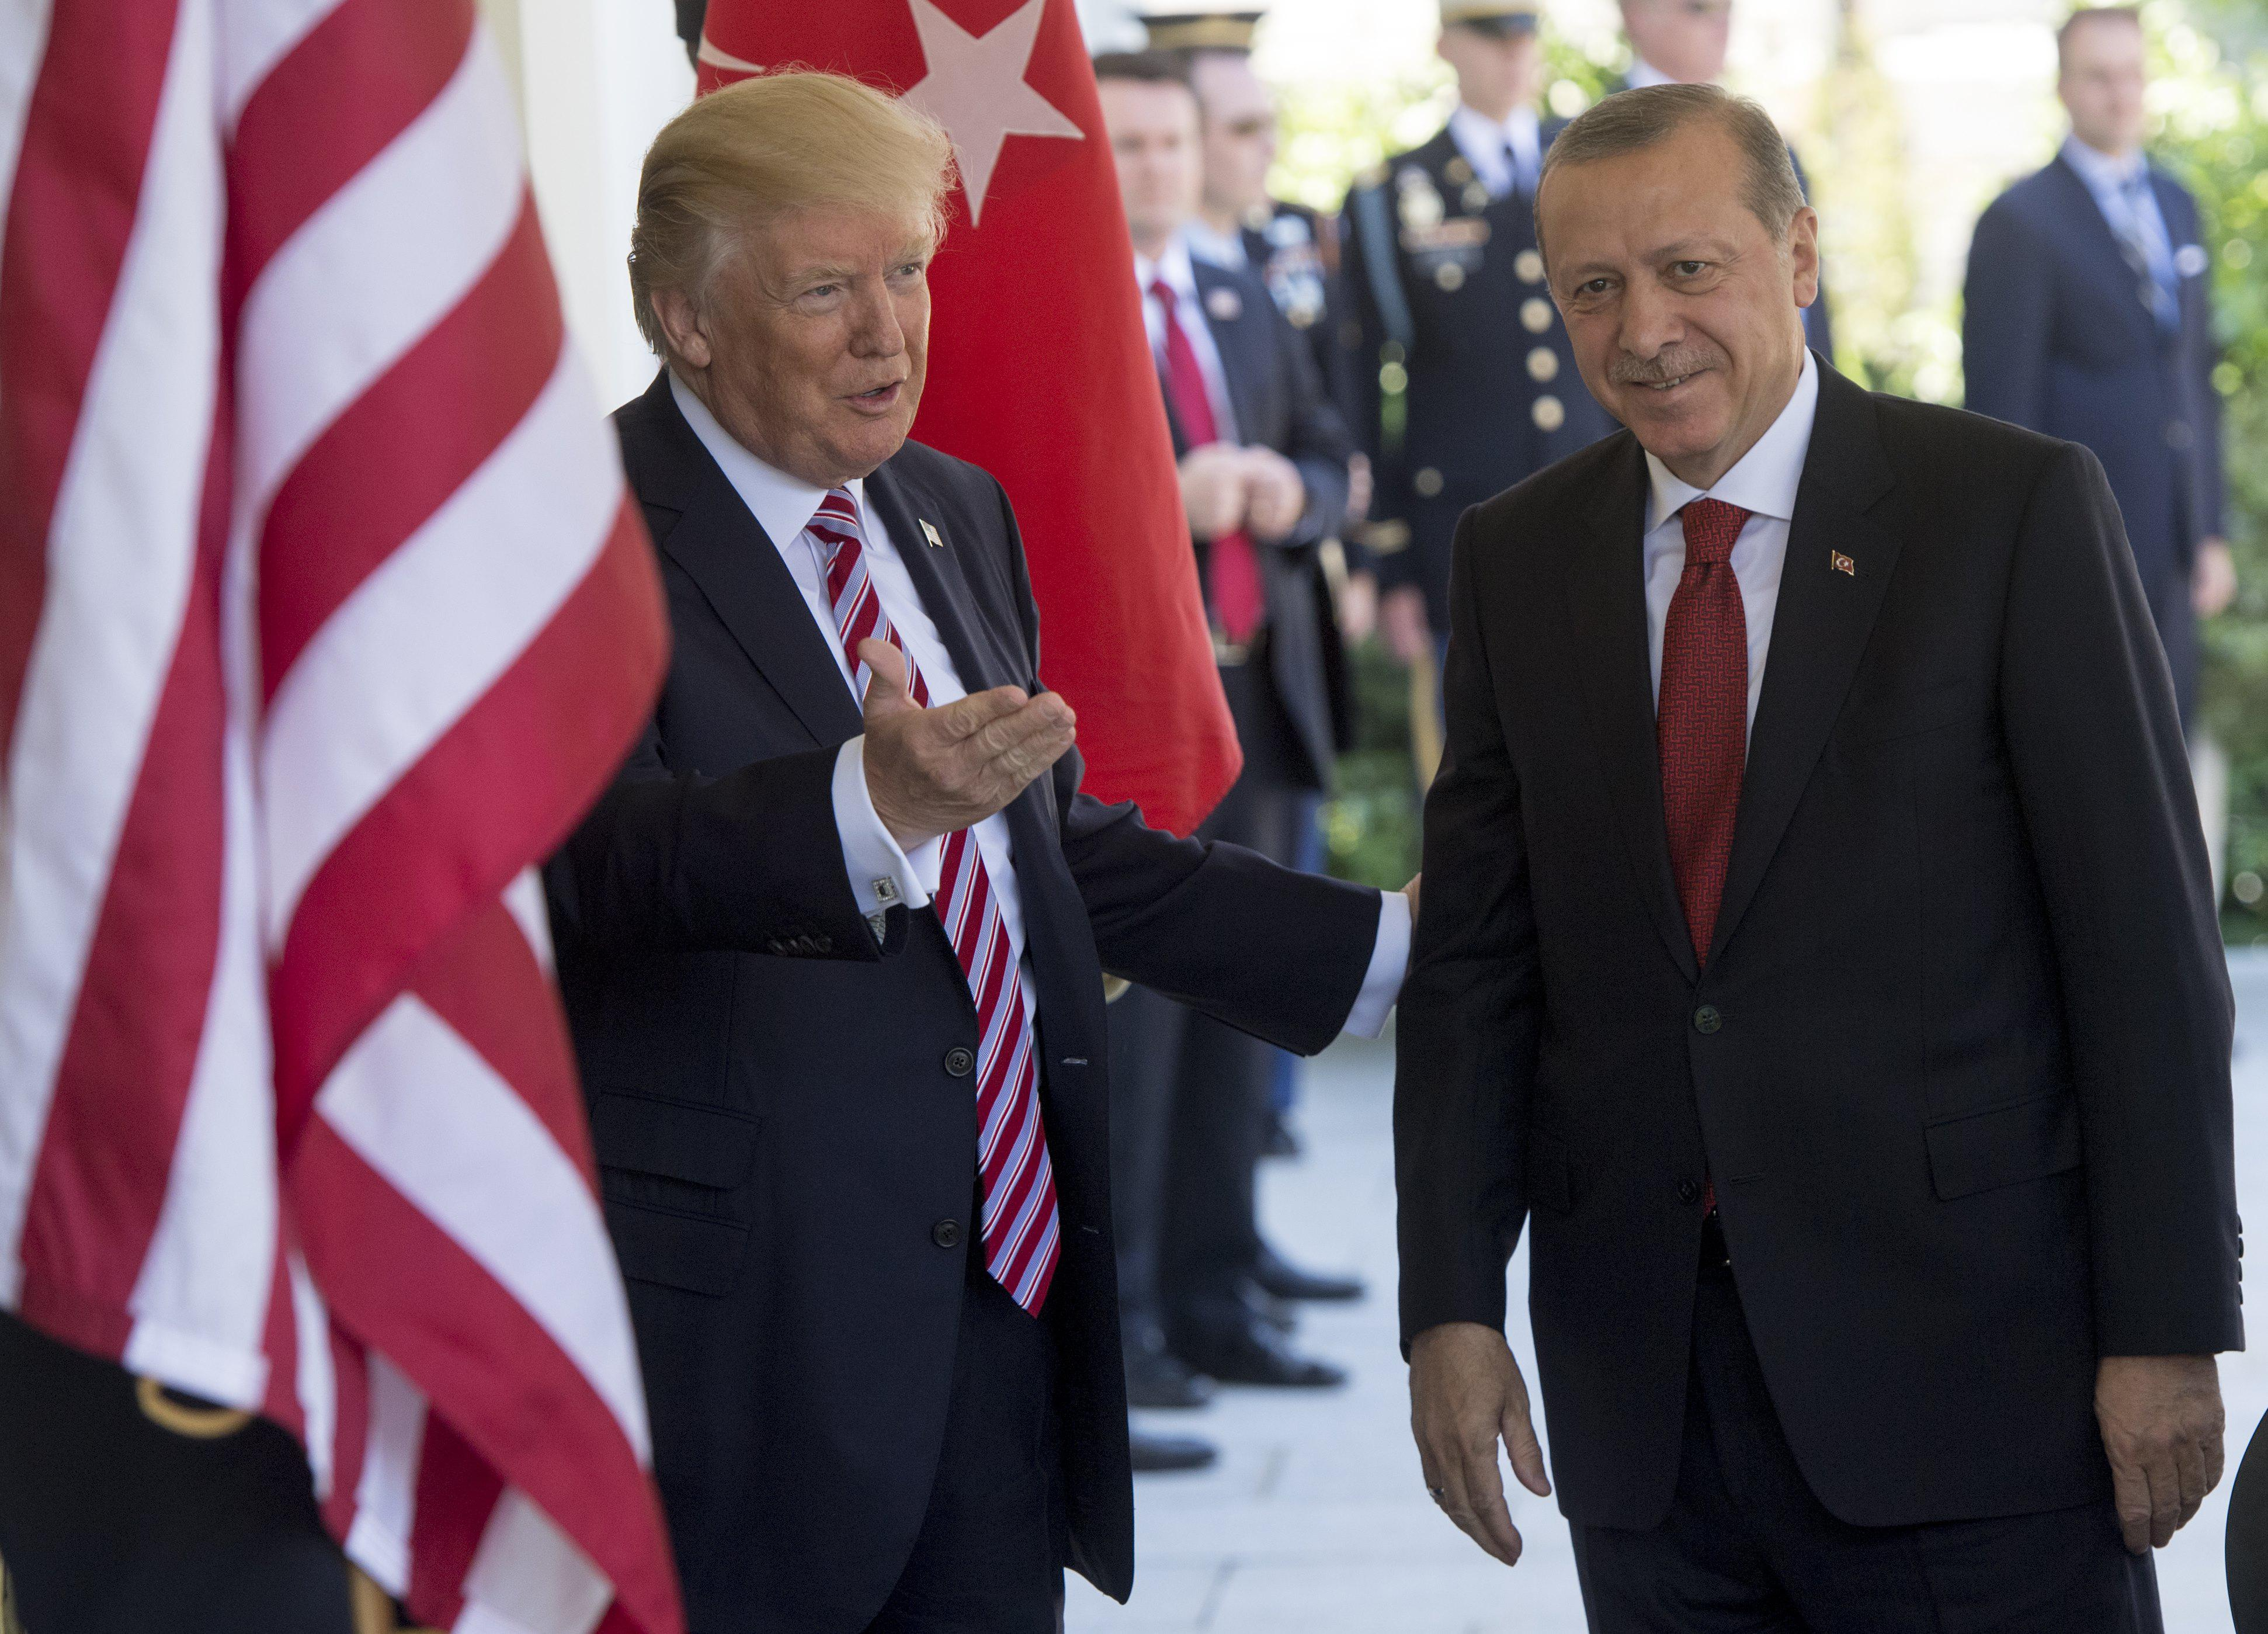 President Donald Trump welcomes Turkish President Recep Tayyip Erdogan as he arrives for meetings at the White House in Washington, DC, May 16, 2017.